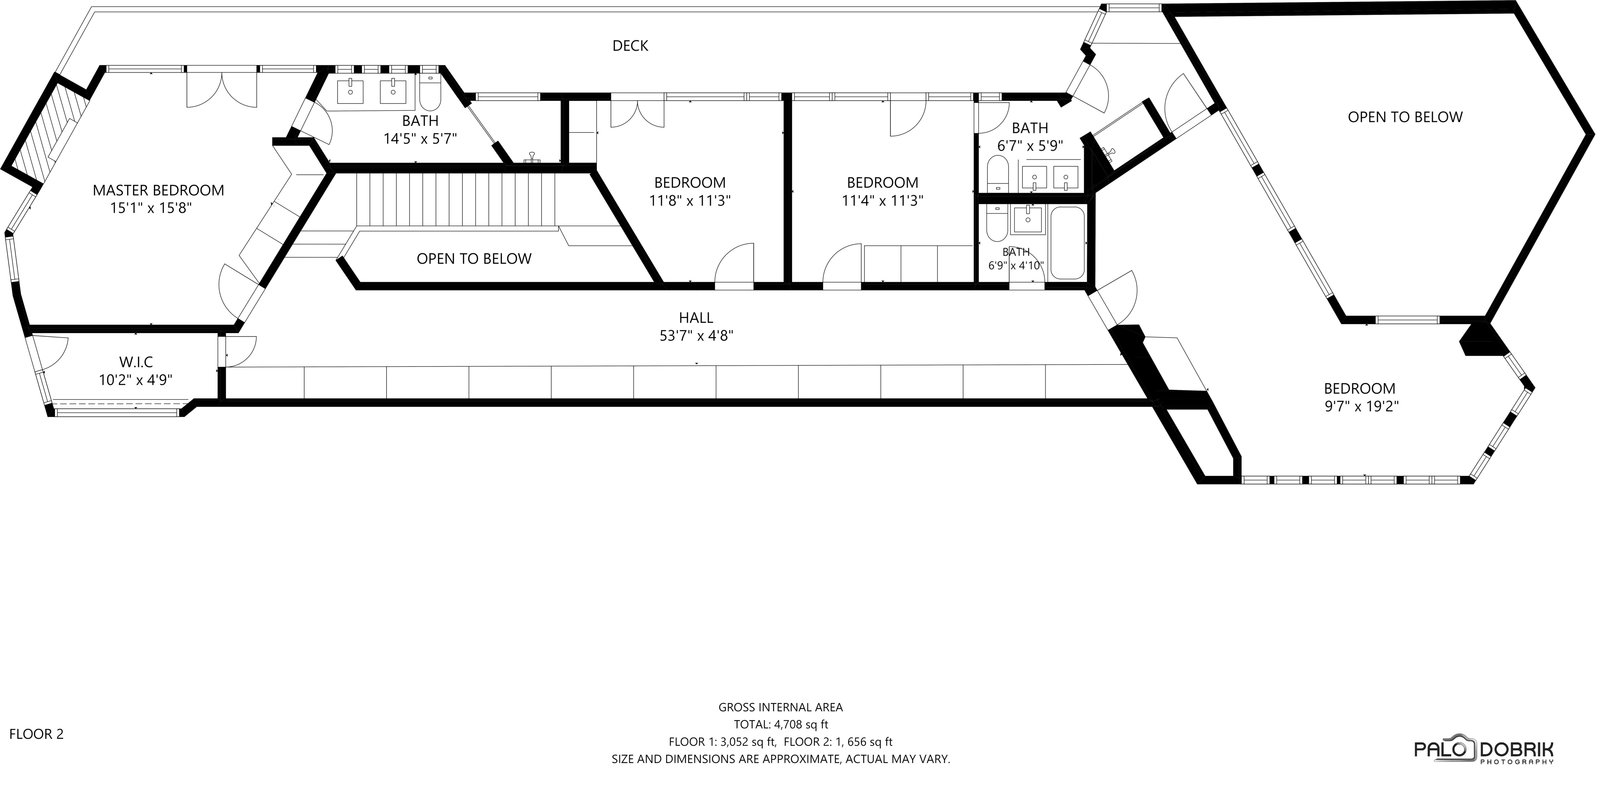 Second-level floor plan of the Charles F. Glore House by Frank Lloyd Wright